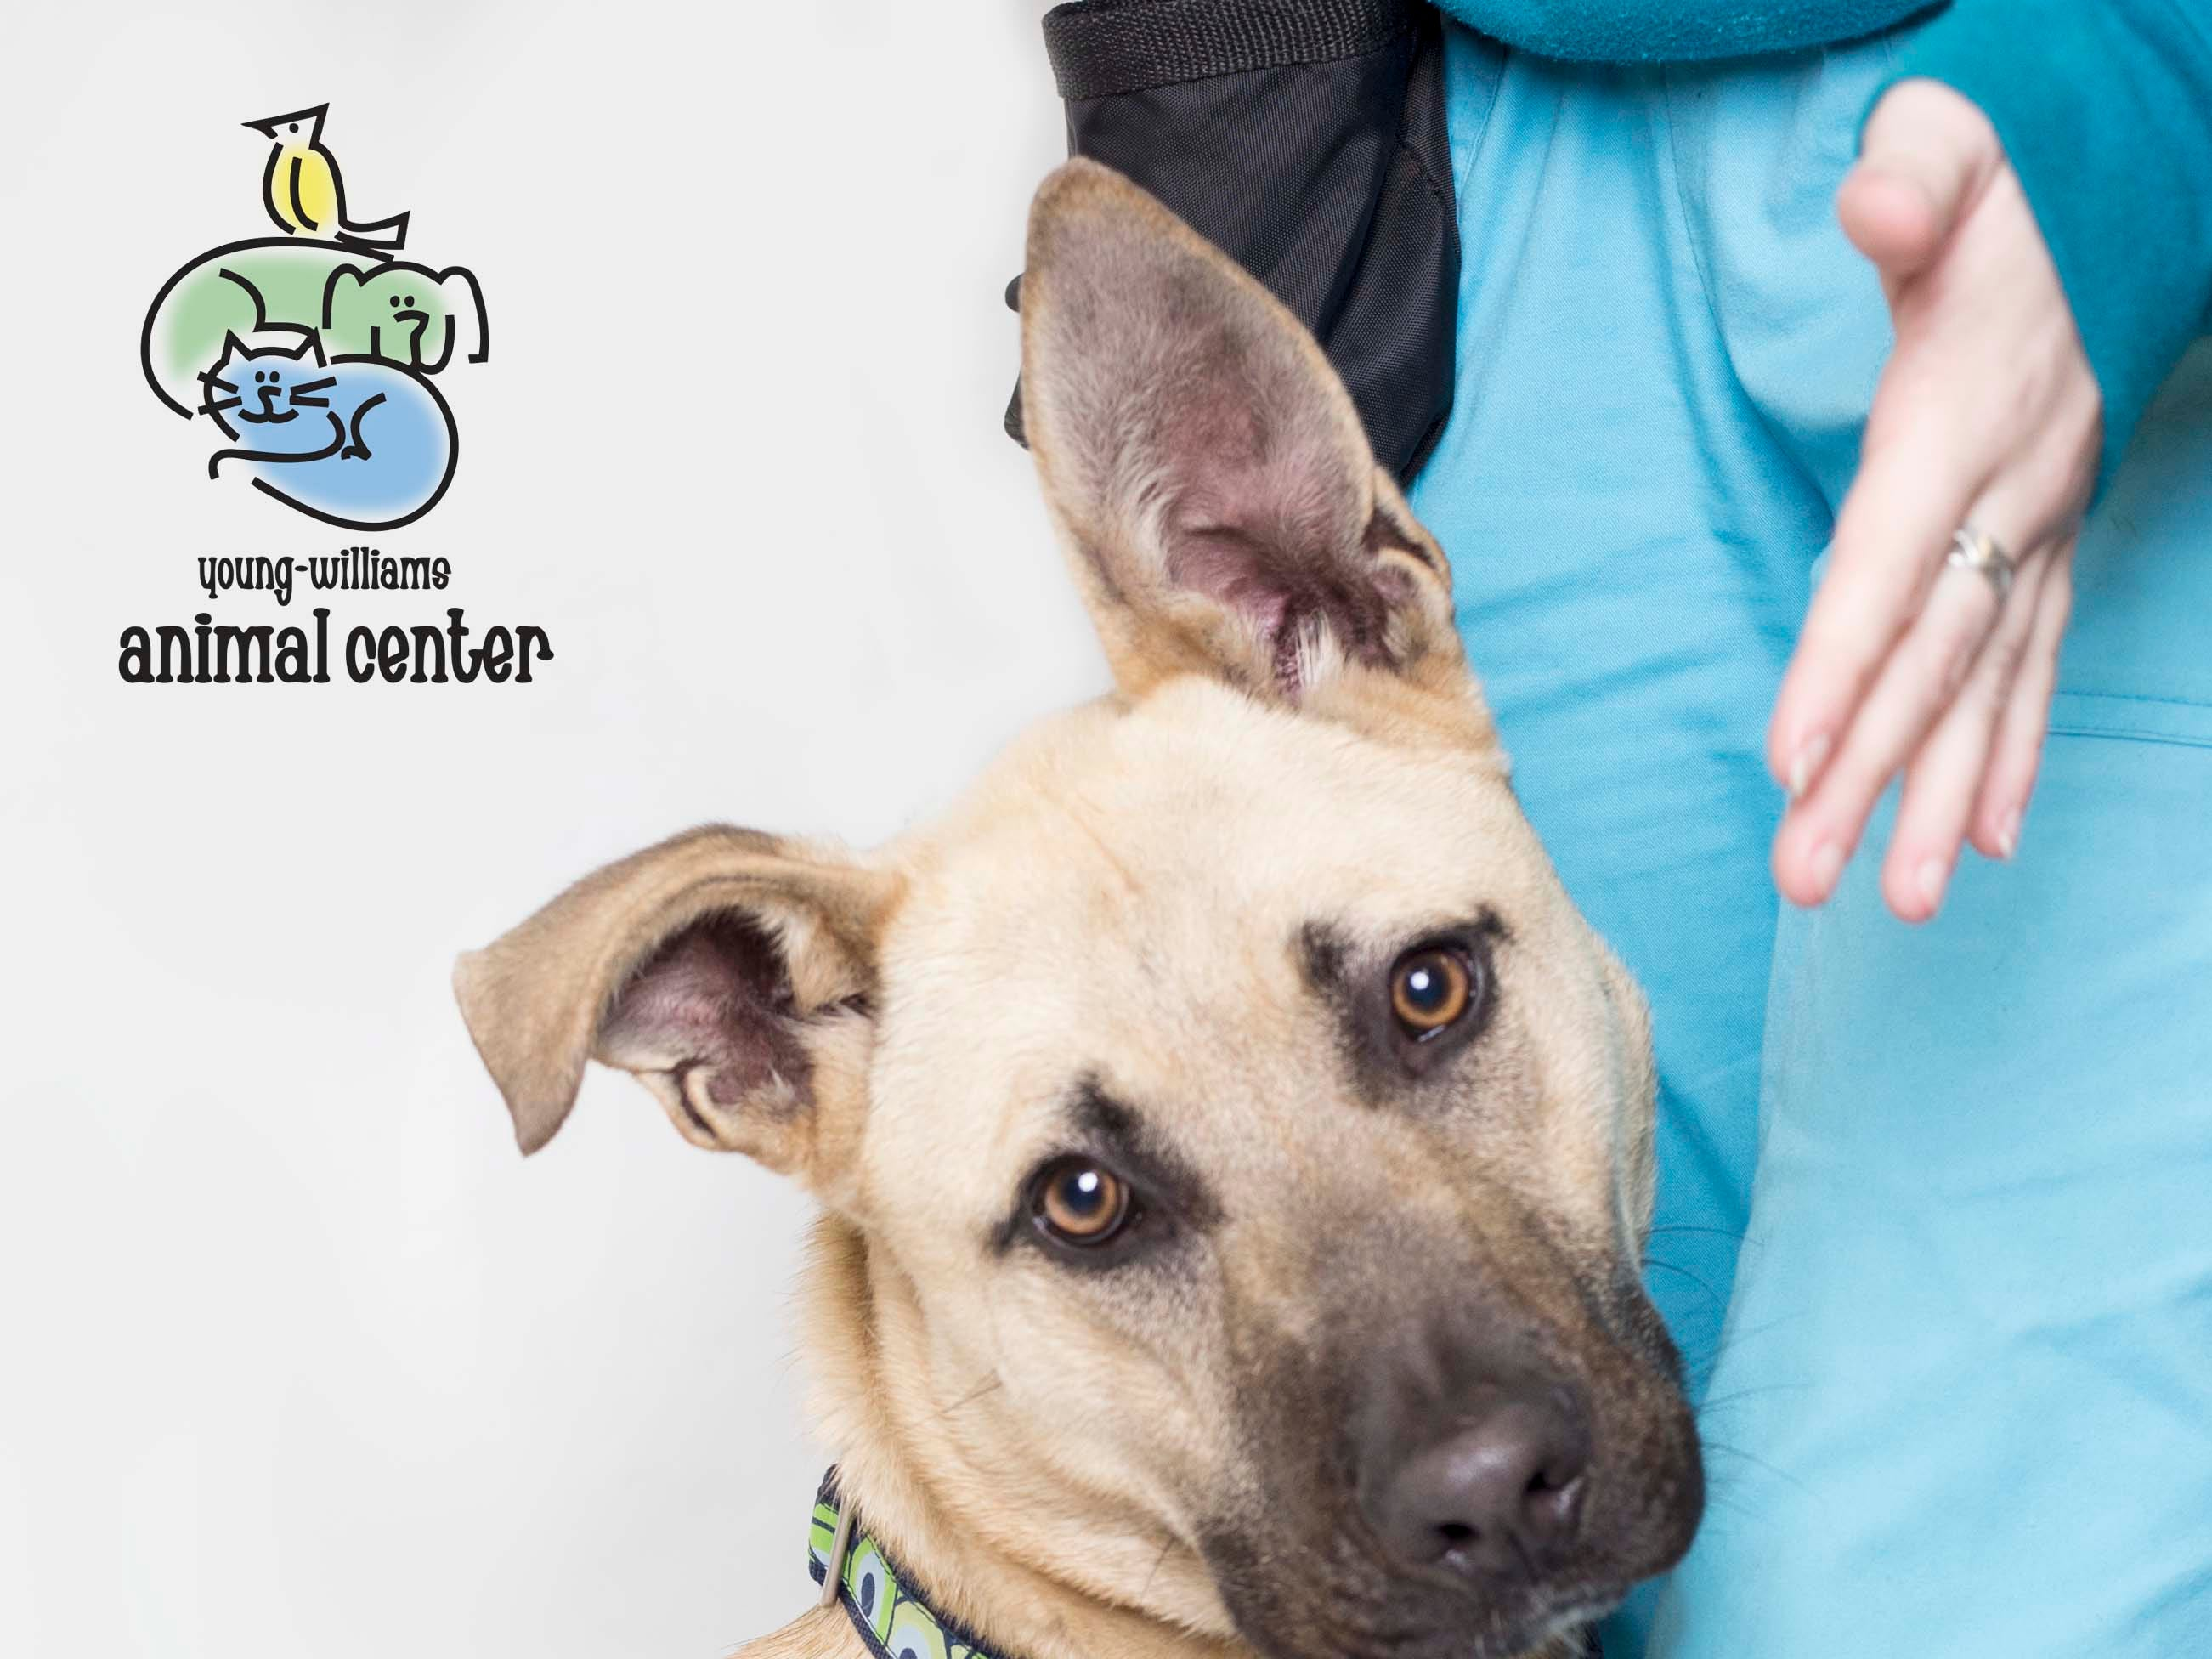 Benny is up for adoption at Young-Williams animal center on Thursday, March 21, 2019.